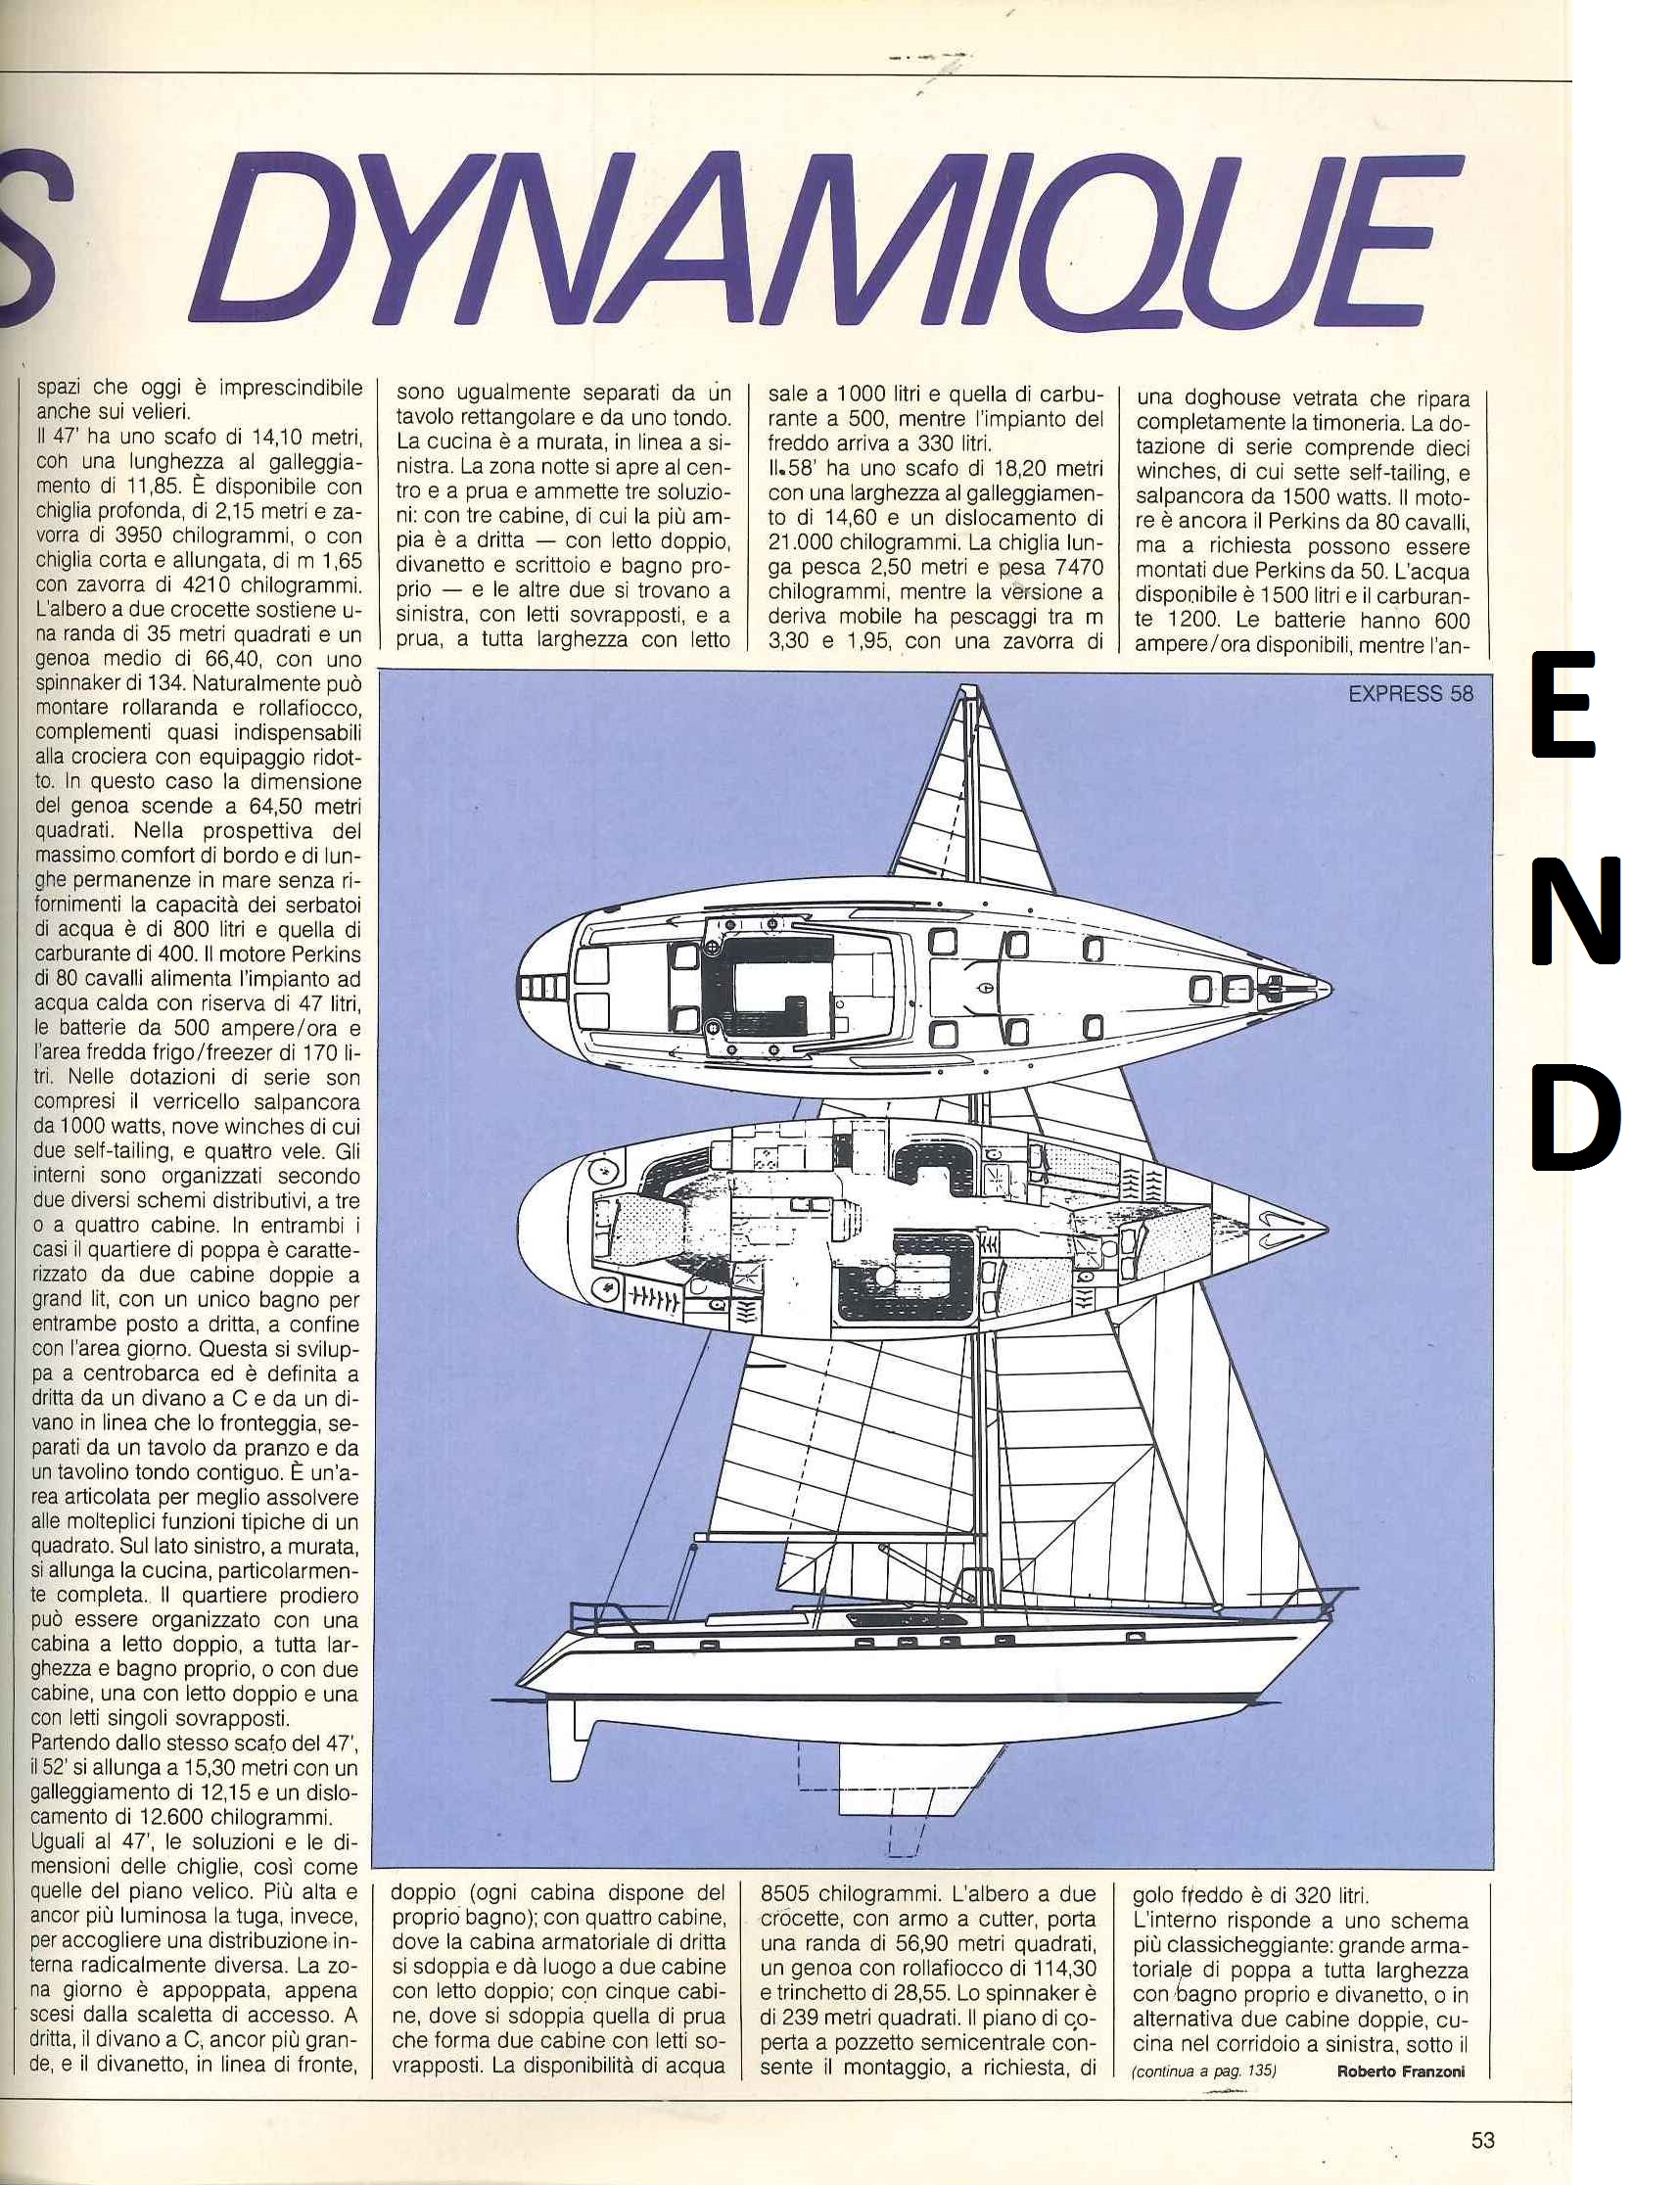 1986 09 PRESS CROSIERE TRES DYNAMIQUE Uomo Mare n° 101 (15).jpg